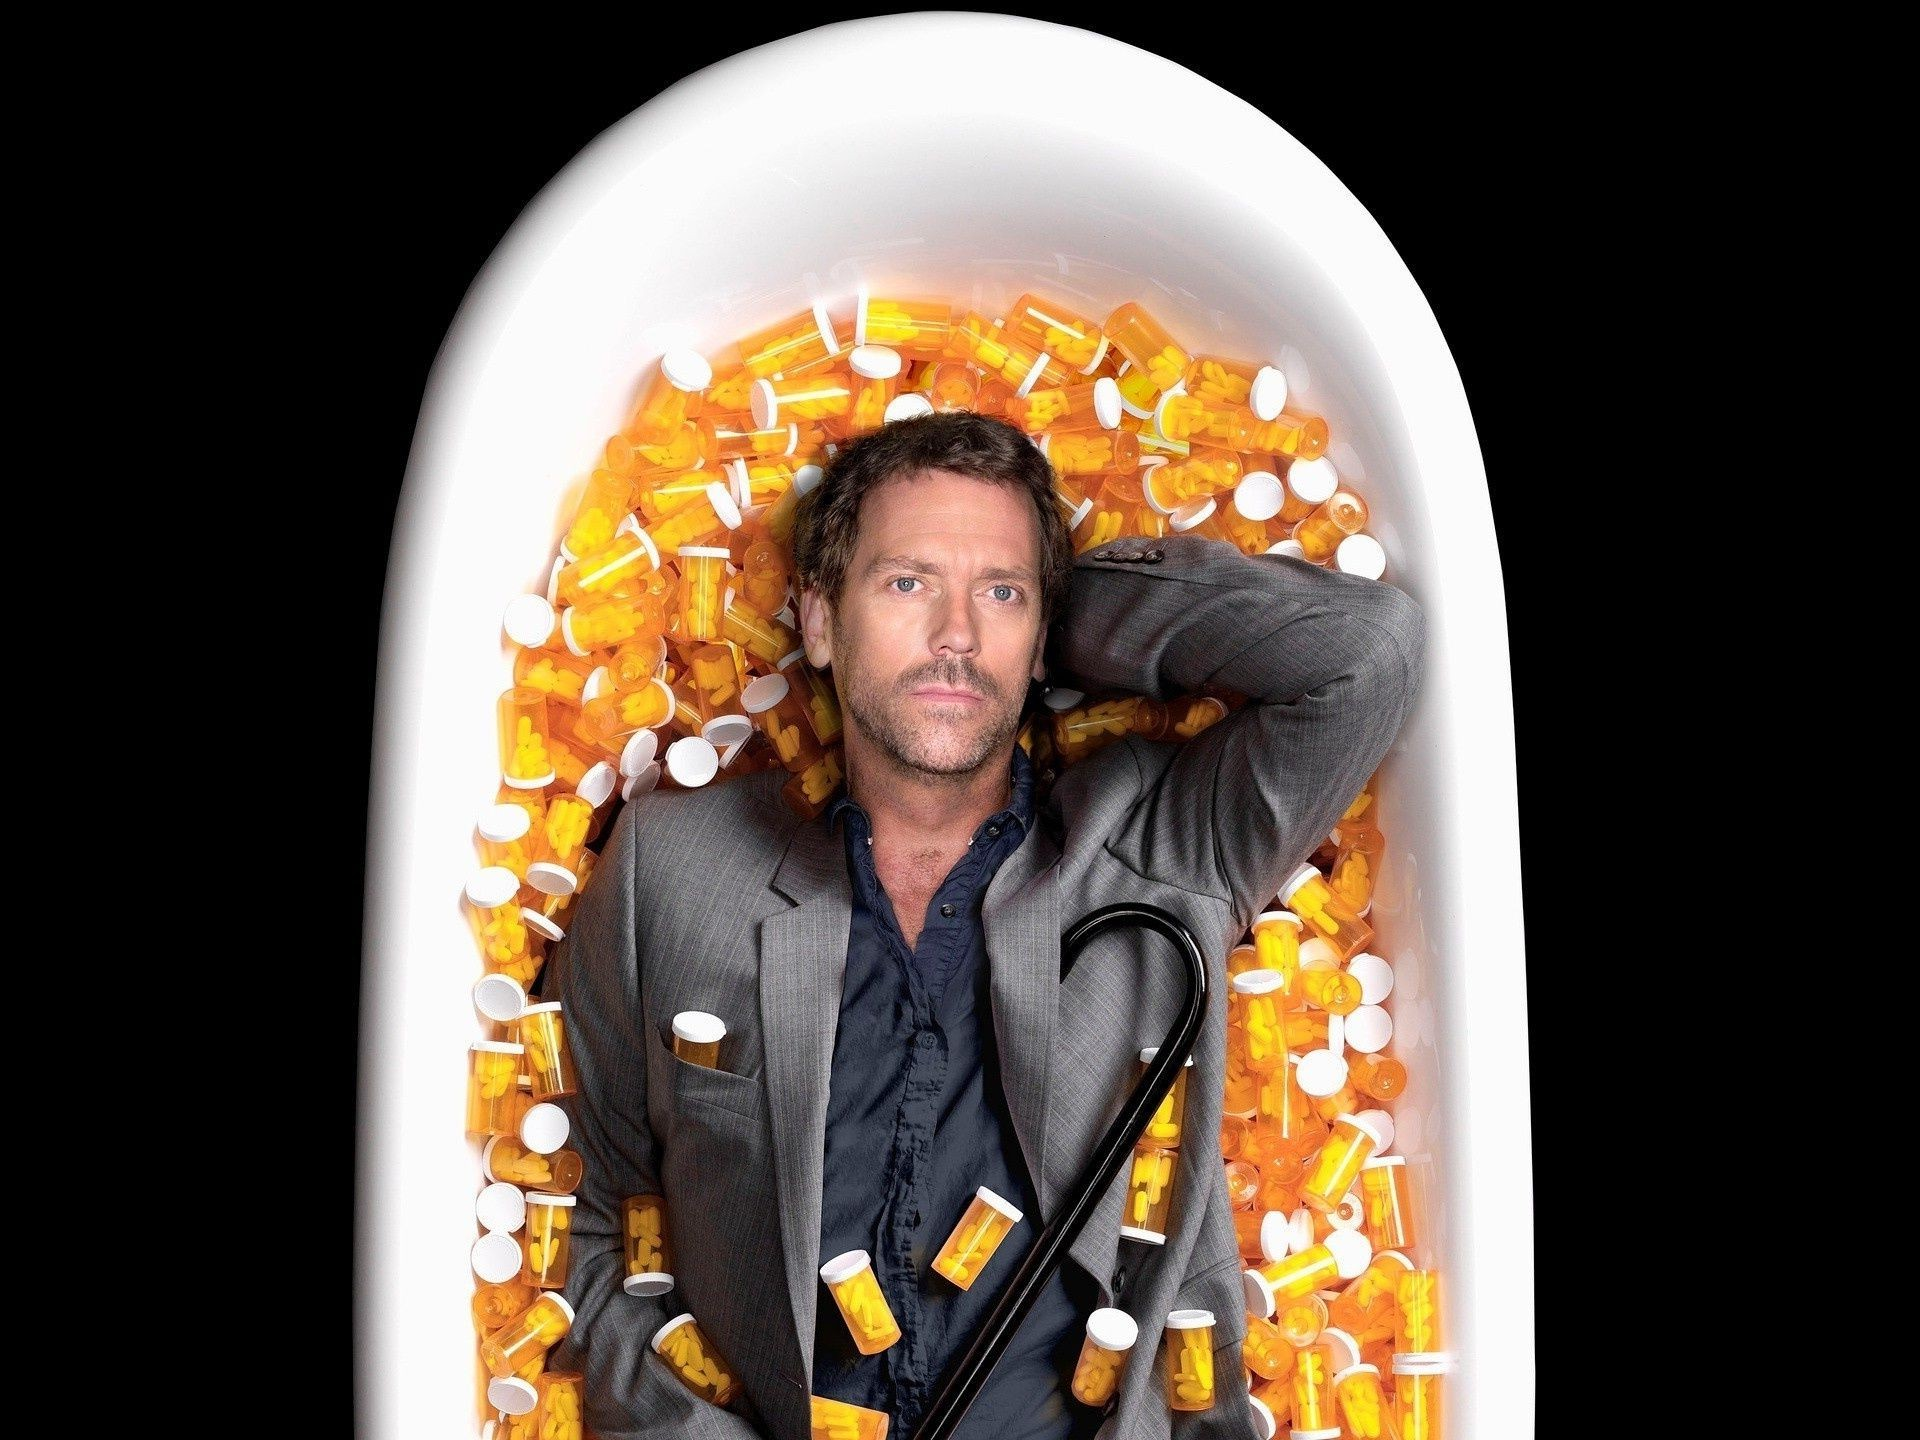 House m.d. bottles of pills in the bathroom the rest Hugh Laurie,